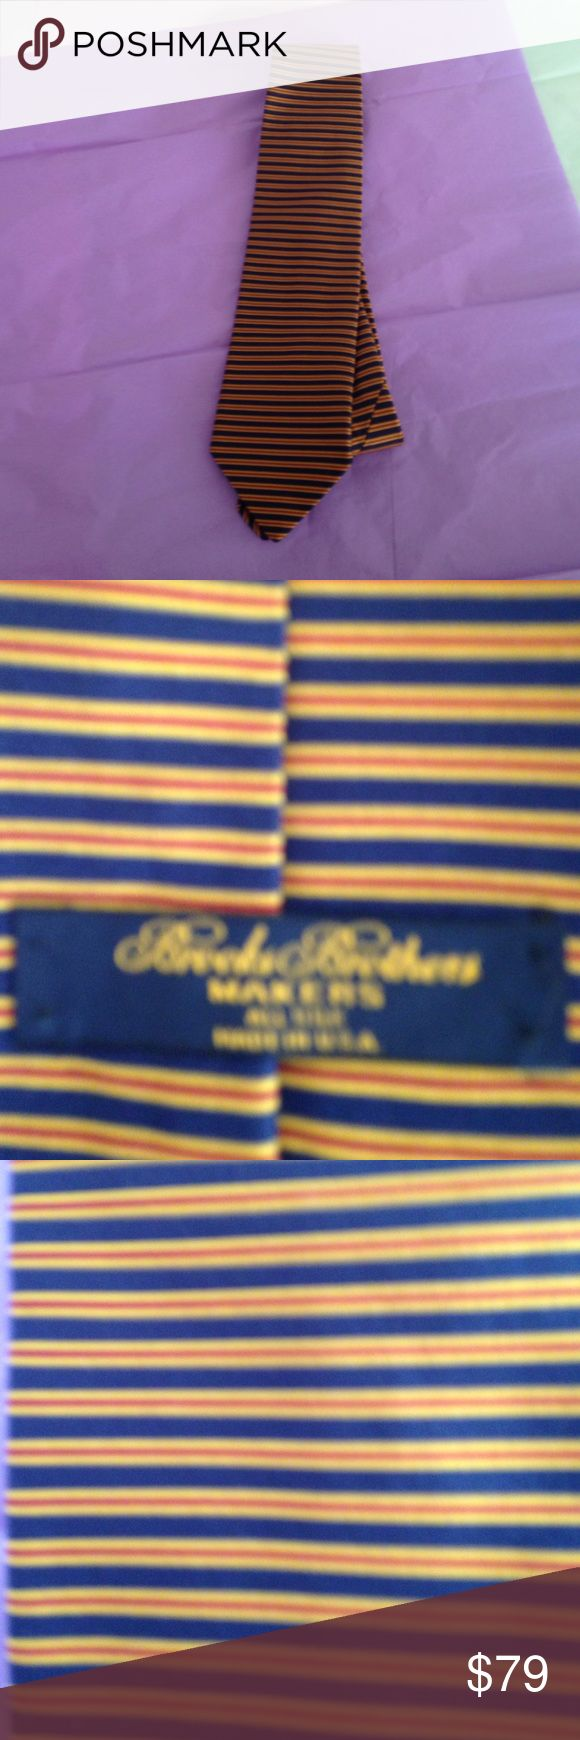 Brooks Brother's makers mark all Silk tie Brooks brothers all Silk tie Brooks Brothers Accessories Ties